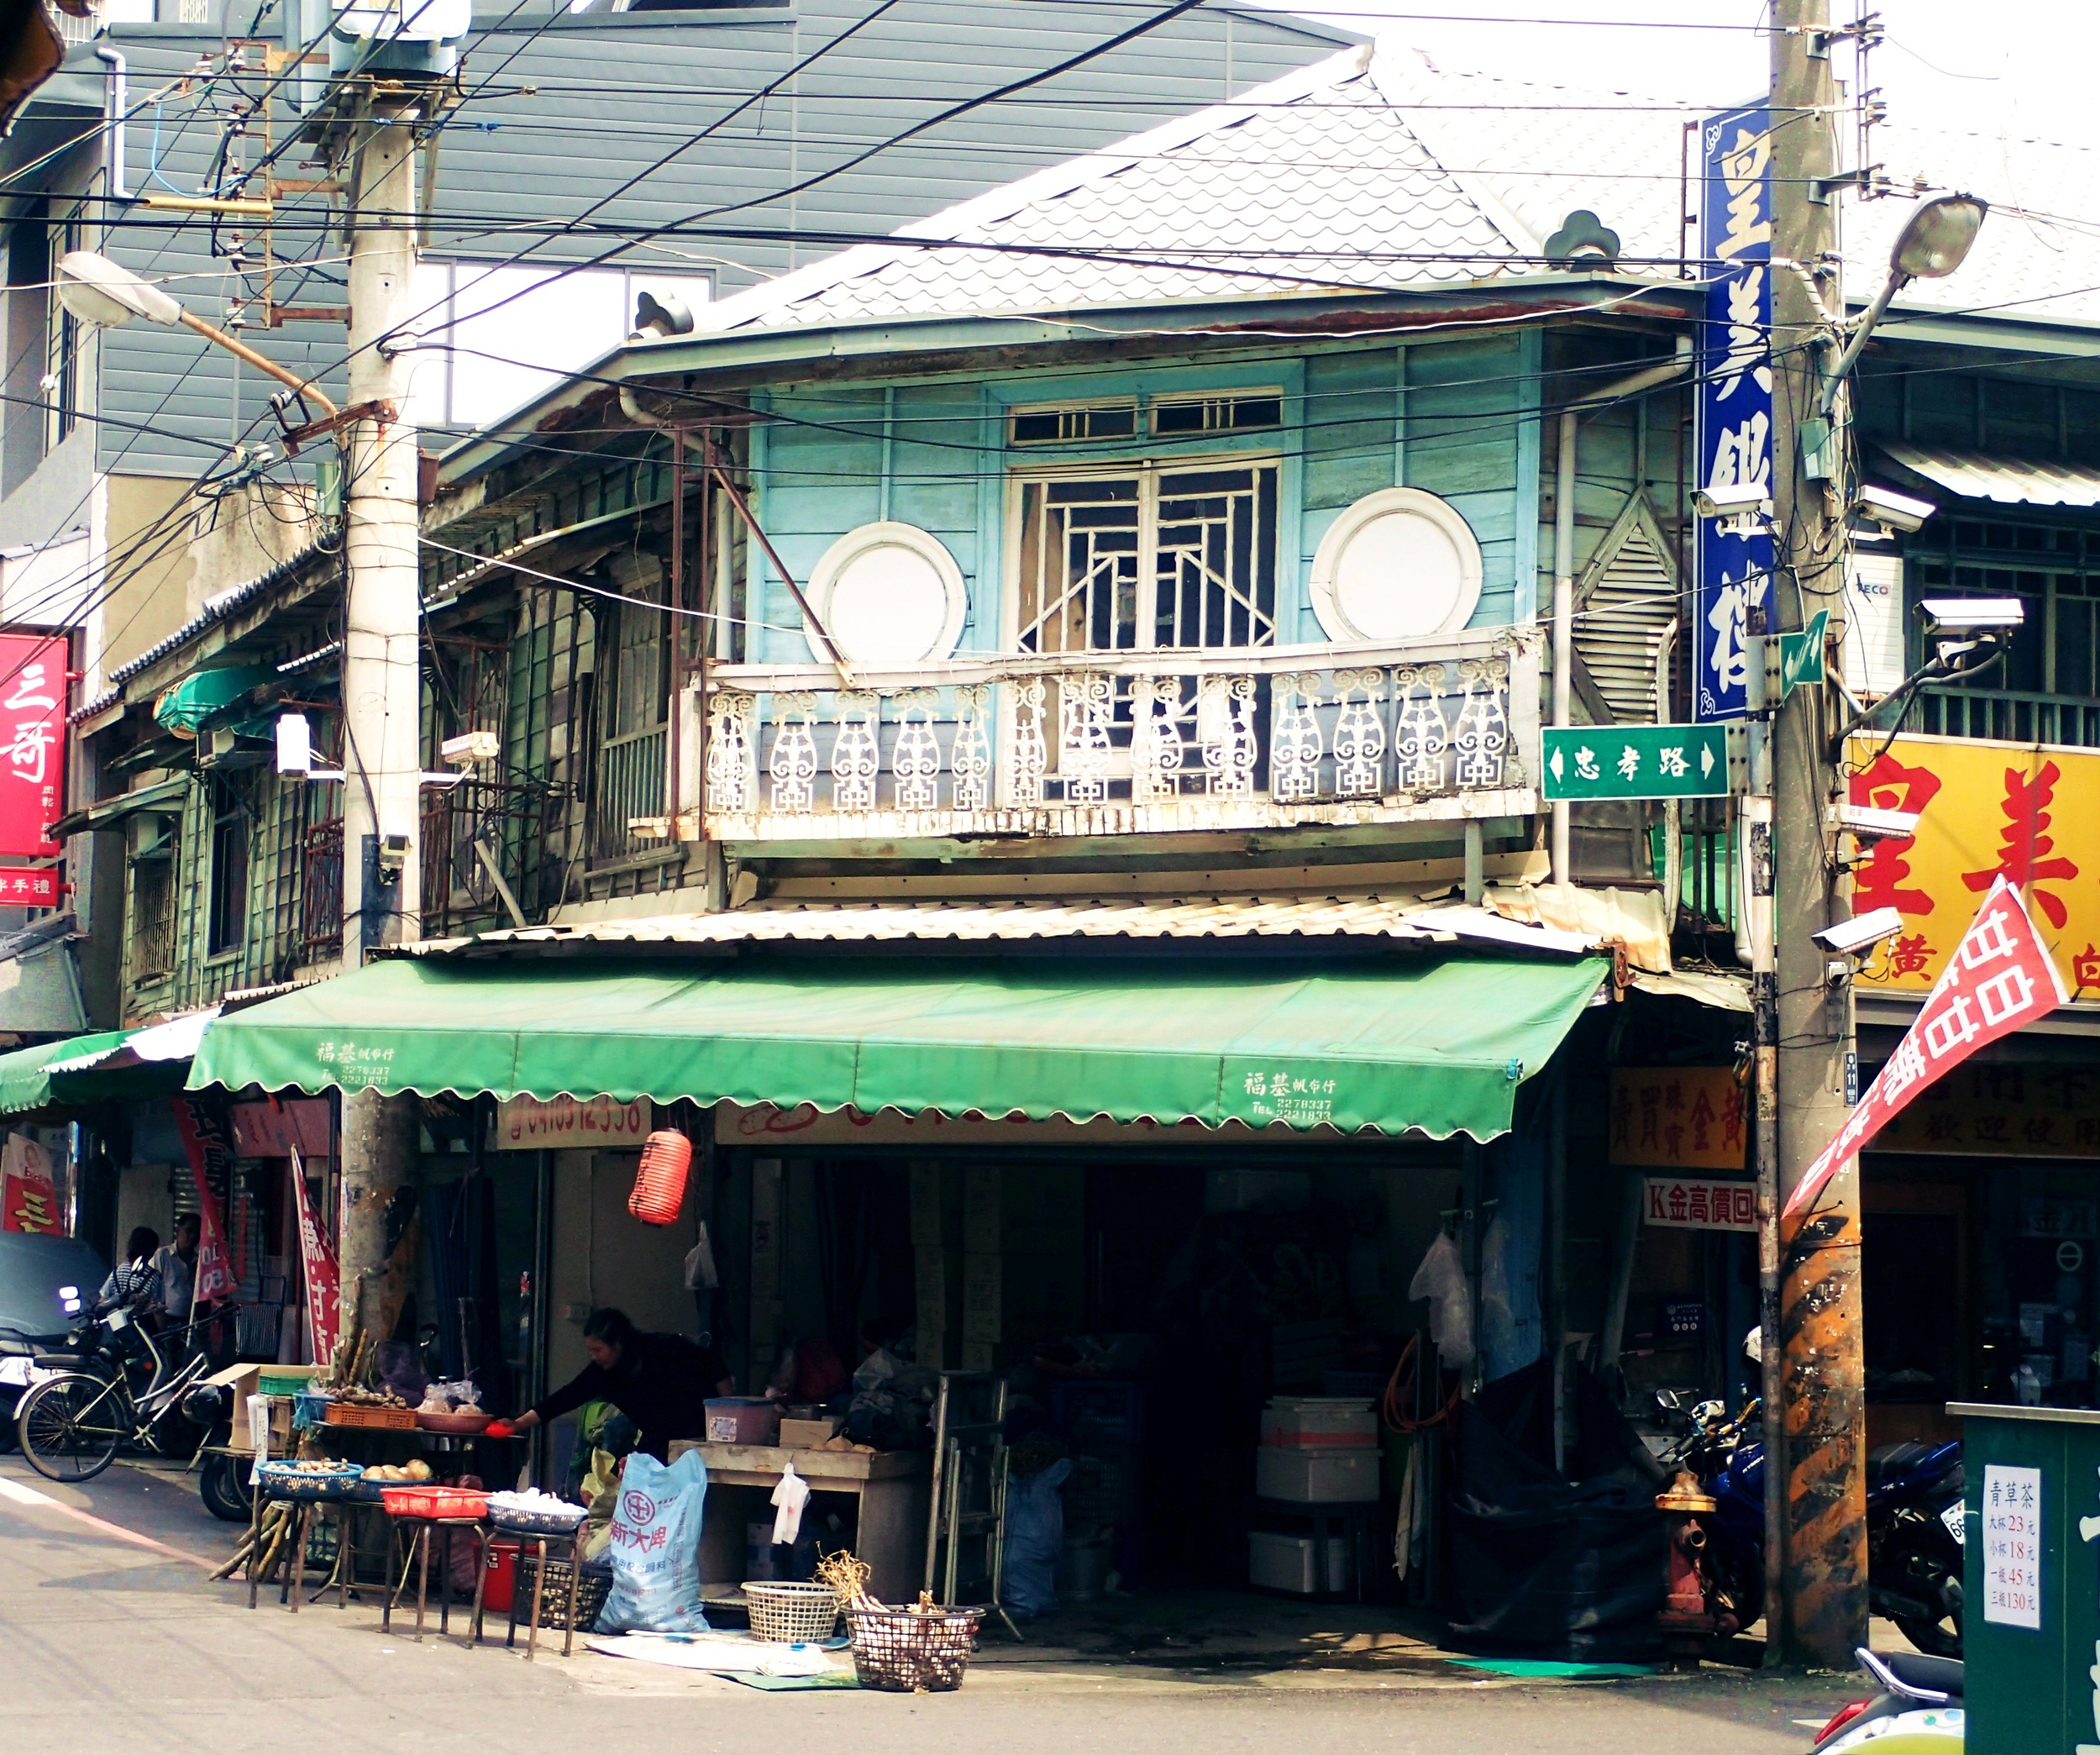 Chiayi's small scale historic streets. 30's art deco meets old Japan.